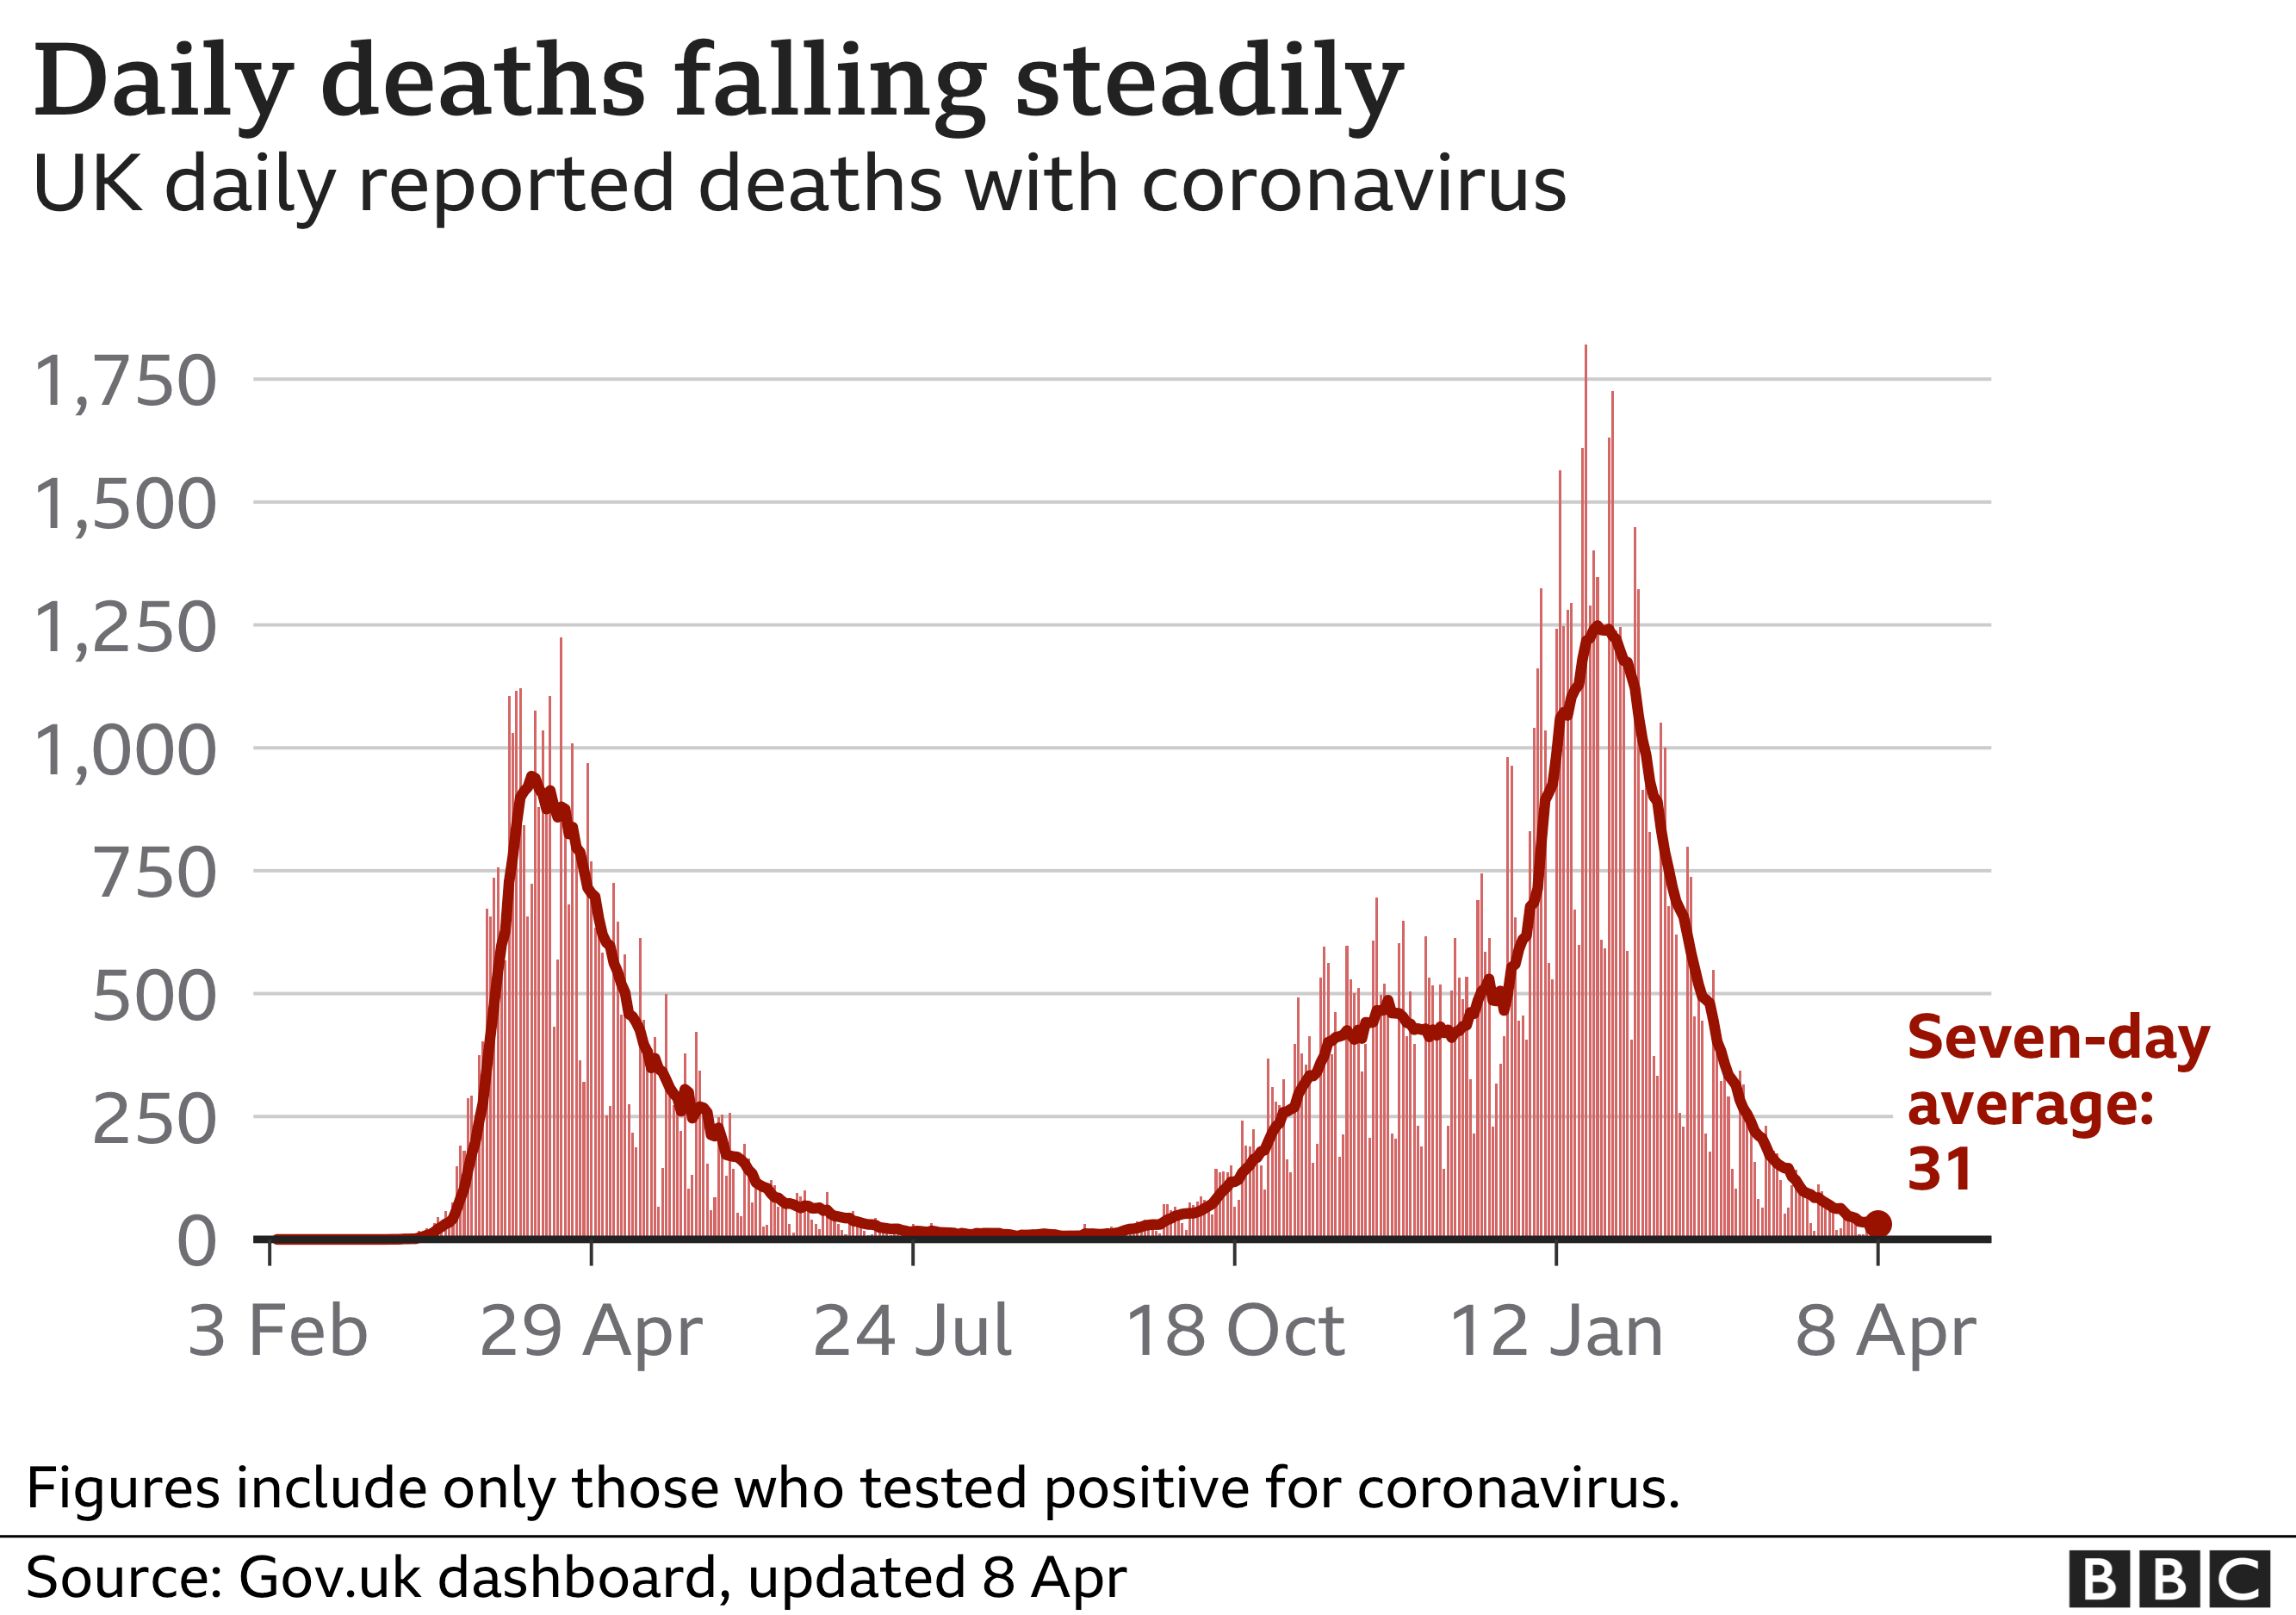 Graph showing daily coroanvirus deaths in the UK